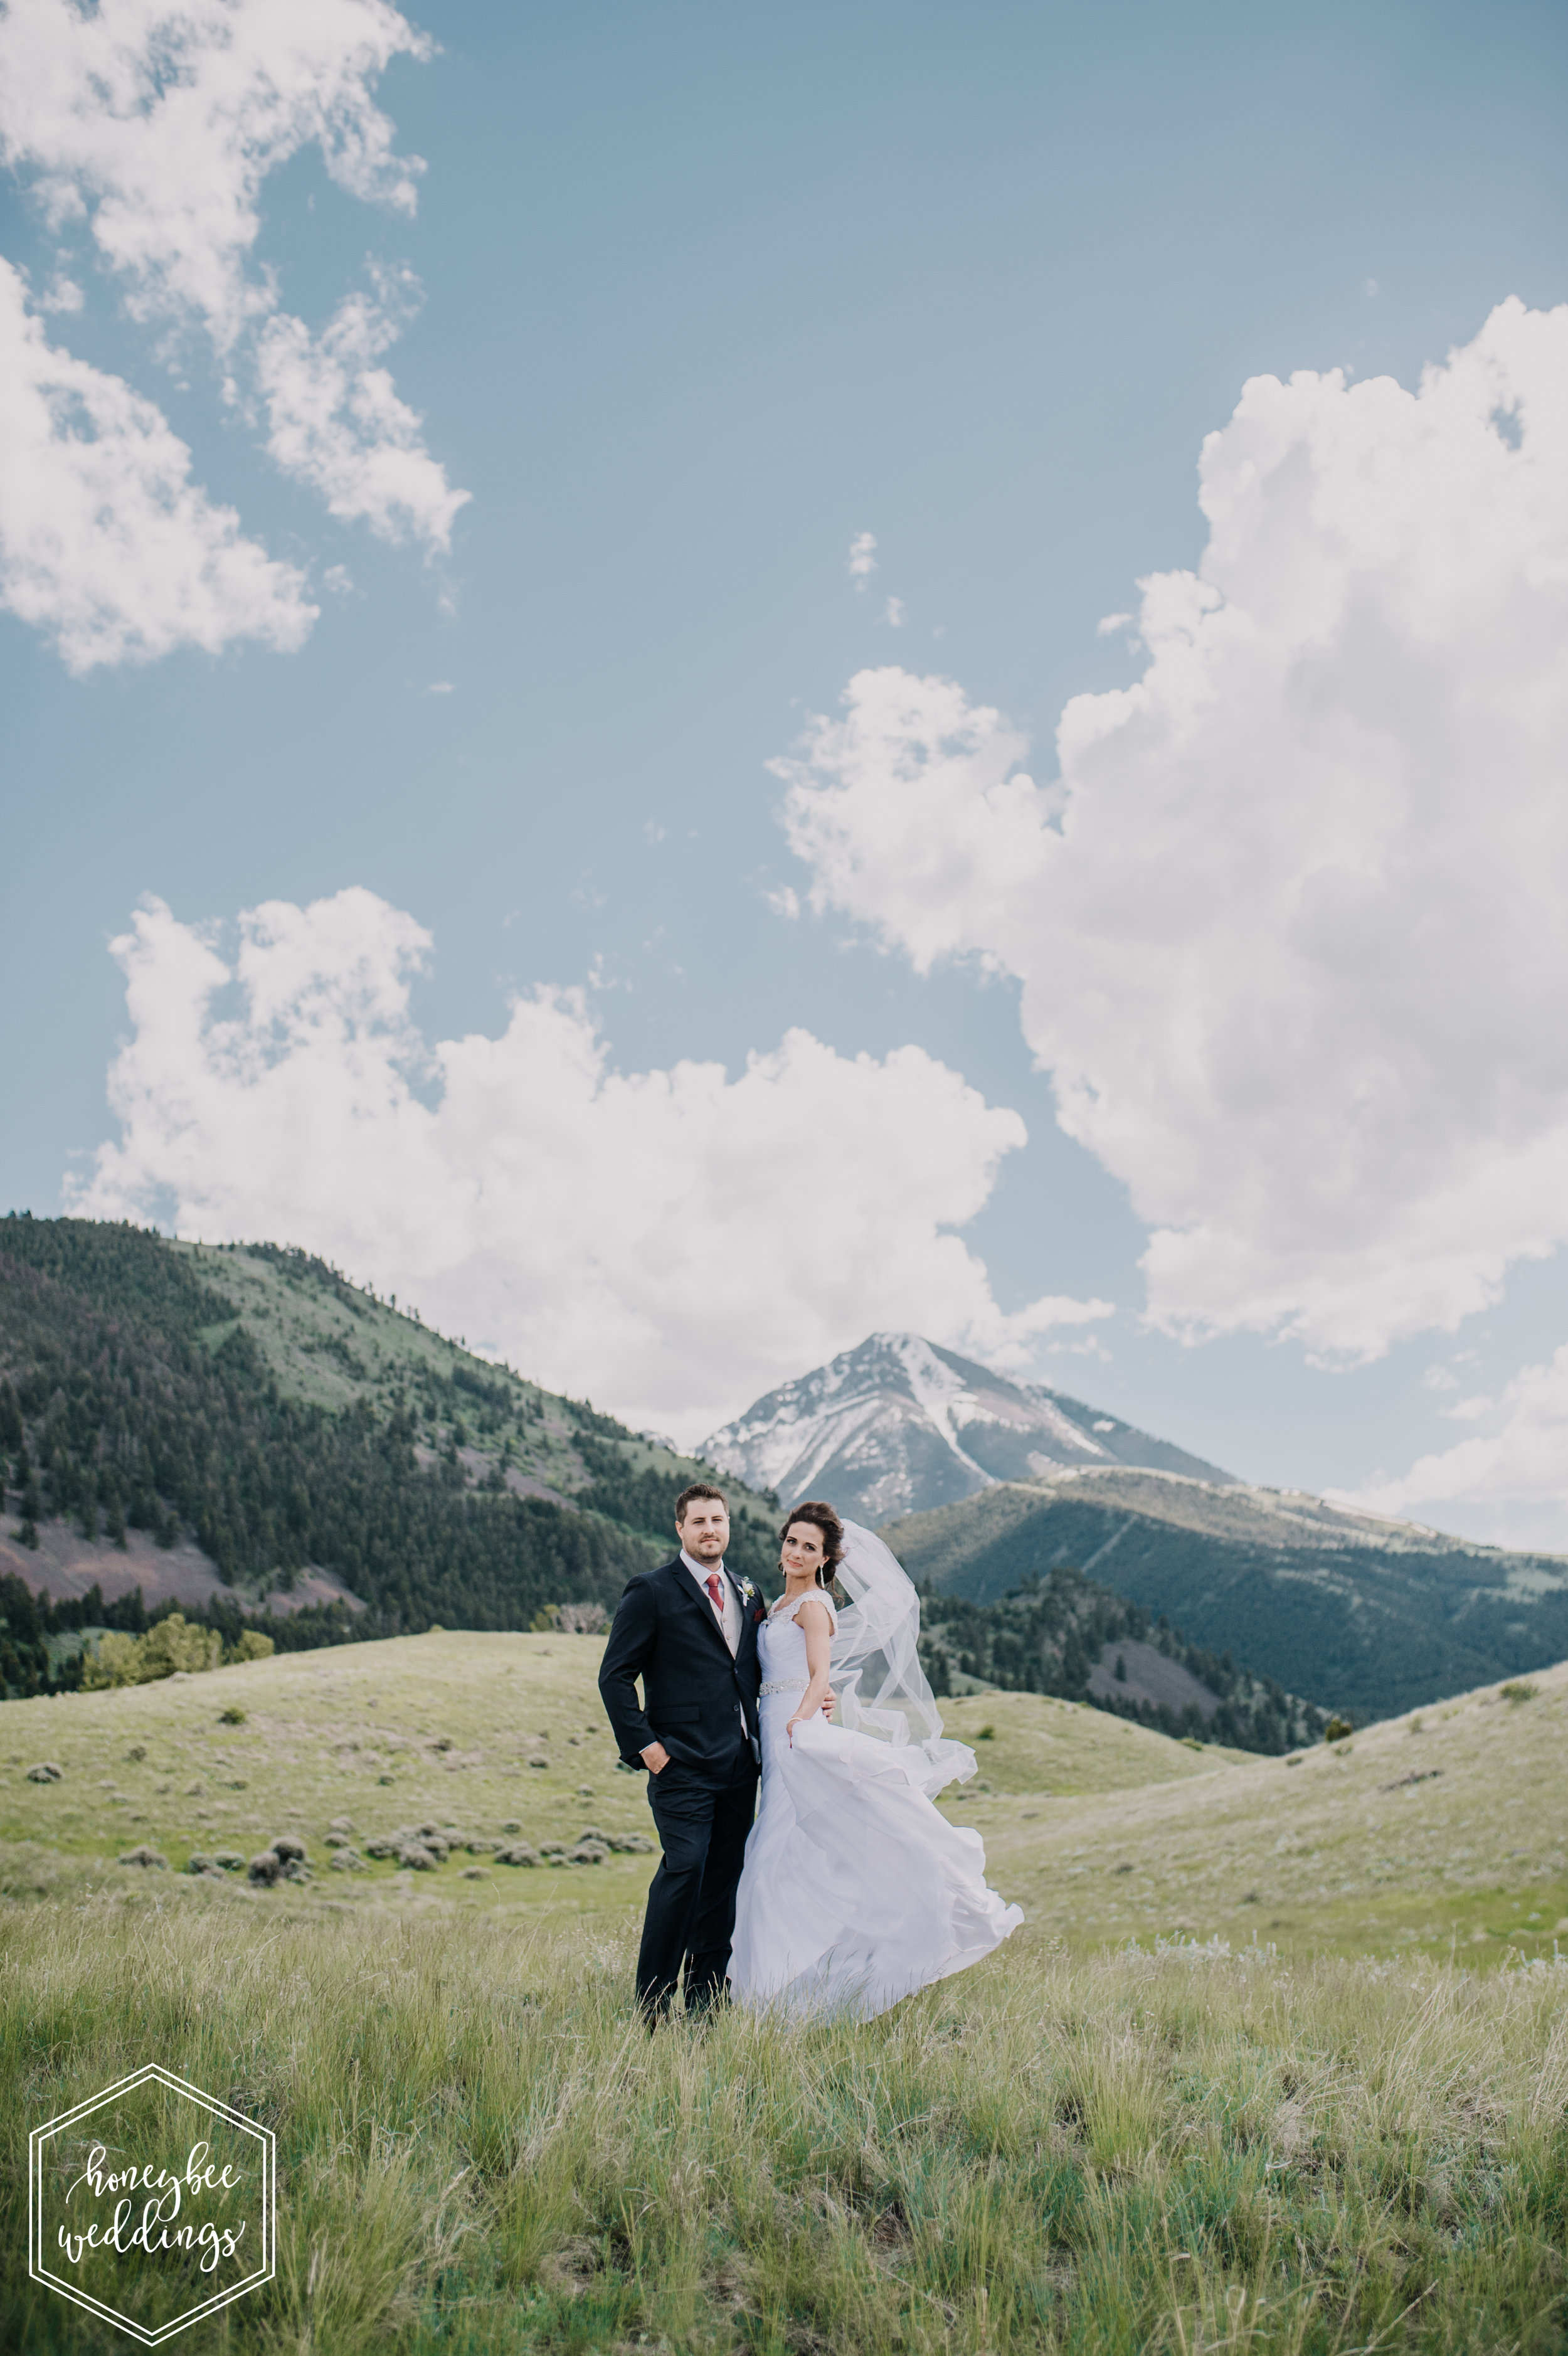 61 Chico Hotsprings Wedding_Bowdino 2018-3129-2.jpg